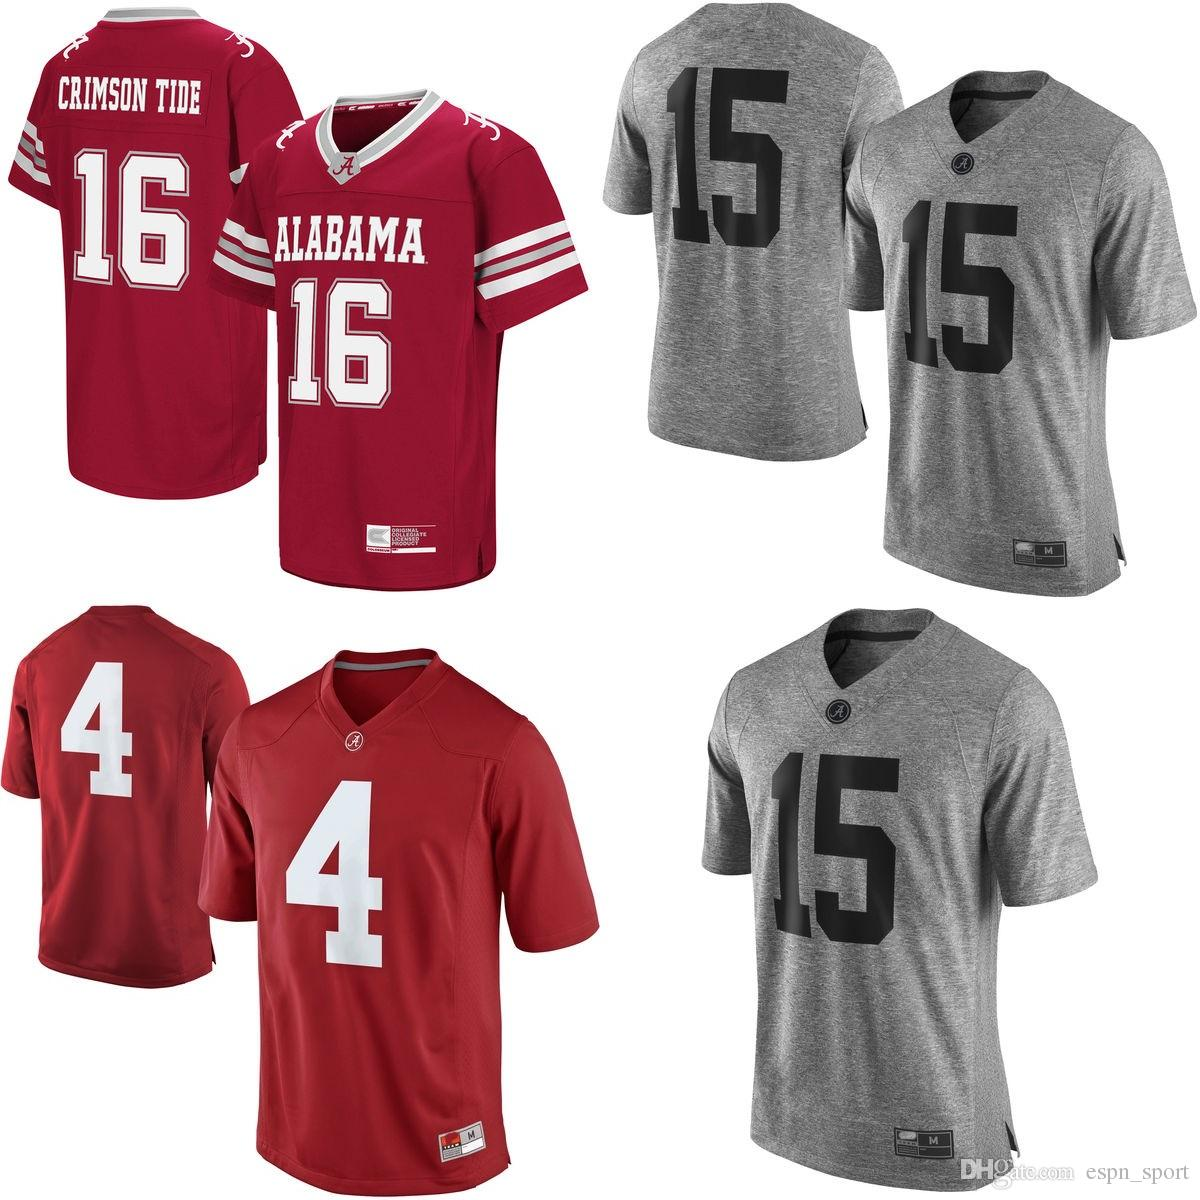 on sale cb5eb 5e7ca Alabama Football Jersey For Toddlers | Toffee Art